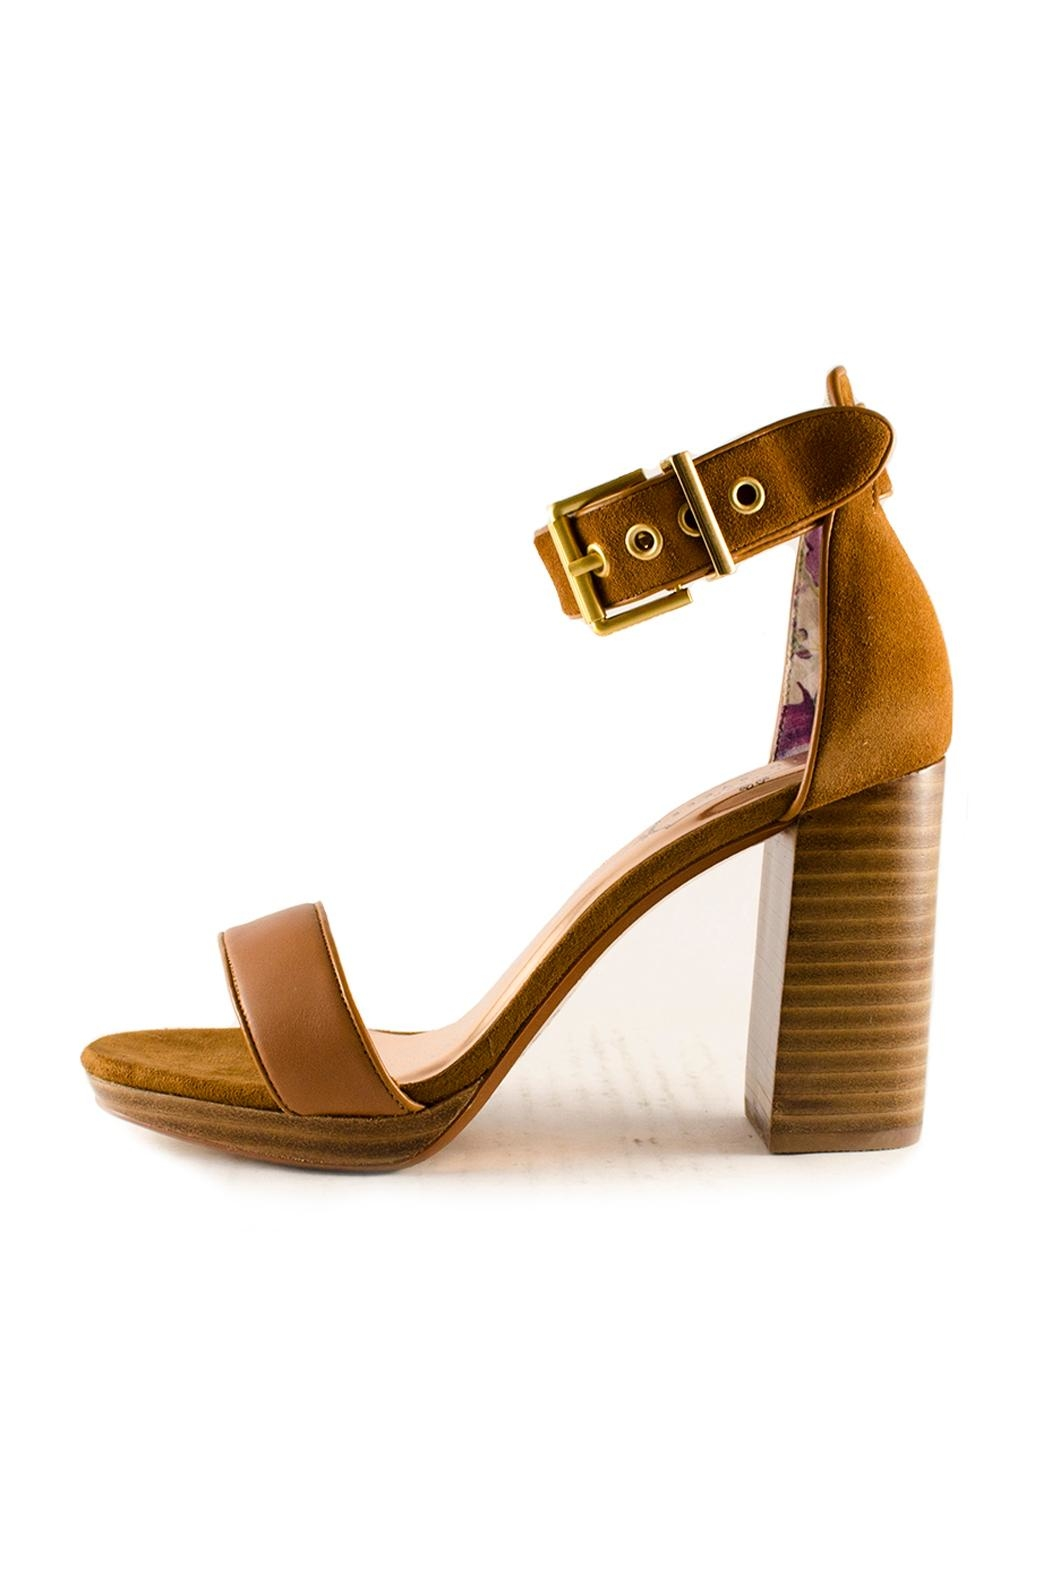 33757794a9ed Ted Baker Lorno Block Heels from Ontario by Buck s Hard Goods ...